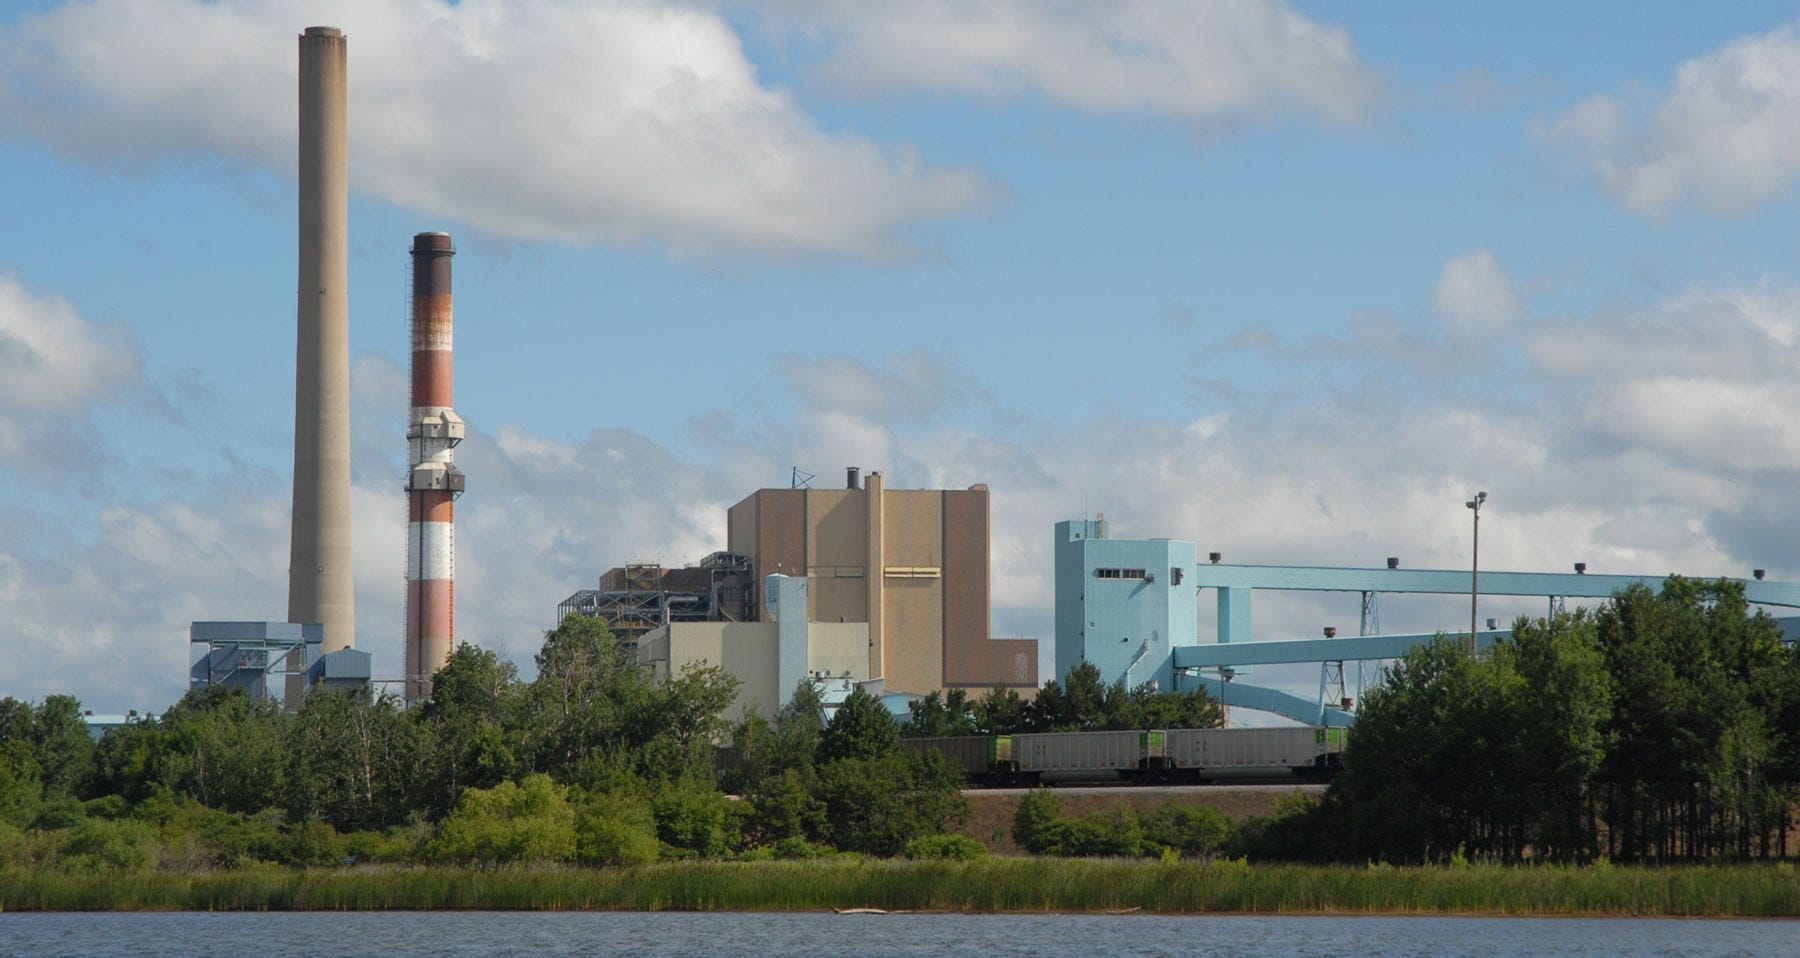 Consumers Energy To Consider Retiring Coal Power Plant Units Sooner Consumers energy will pay $545,000 to settle a dig notice violation case filed with the michigan public service commission. consumers energy to consider retiring